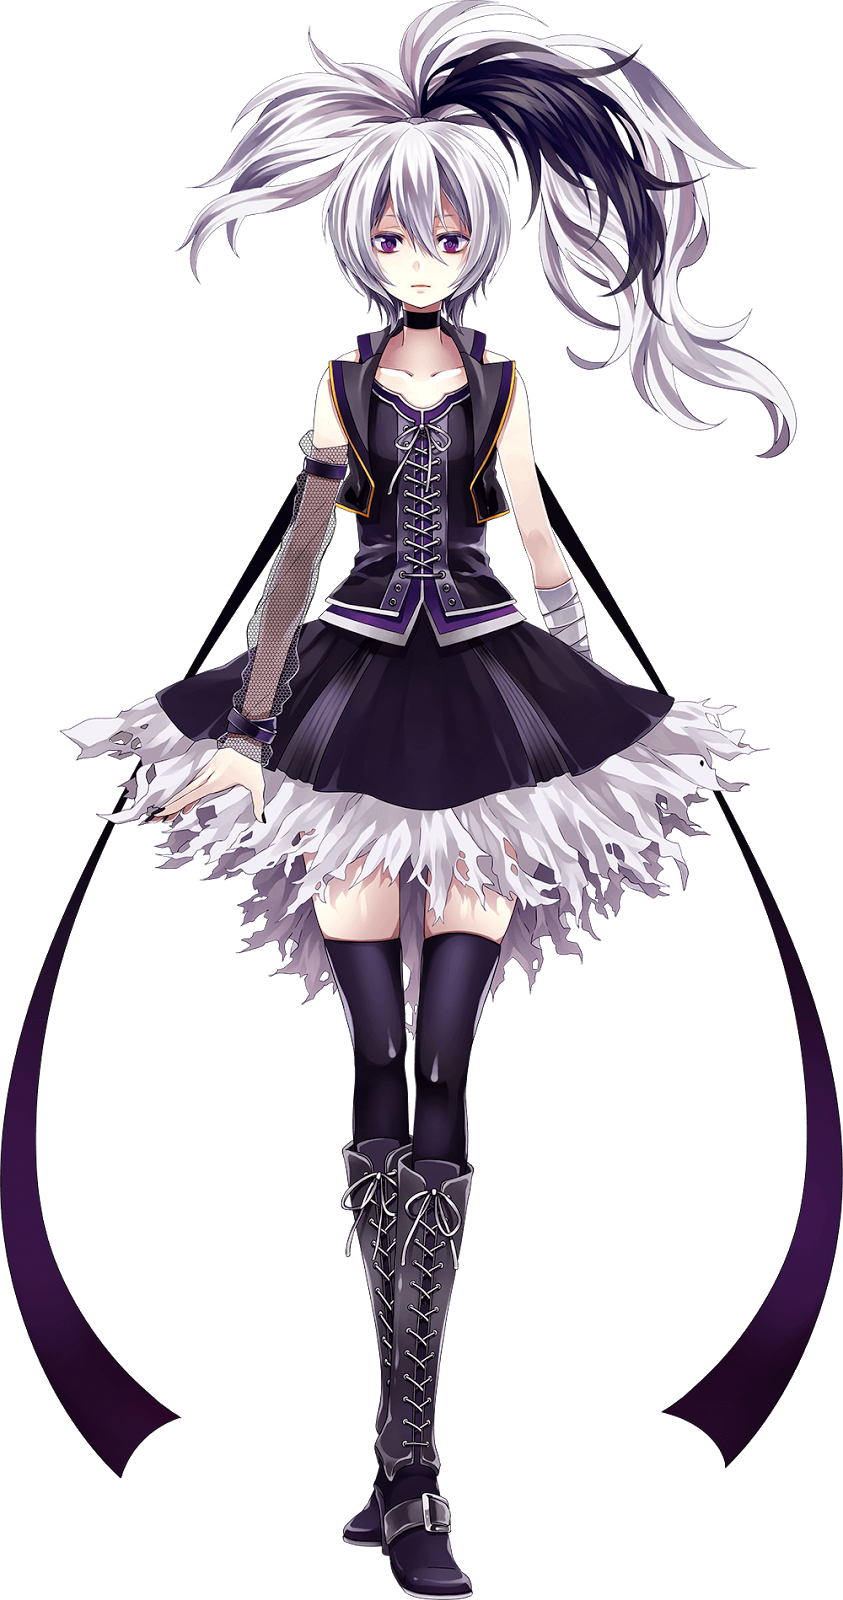 K Anime Characters Wikipedia : V flower vocaloid character profile all about